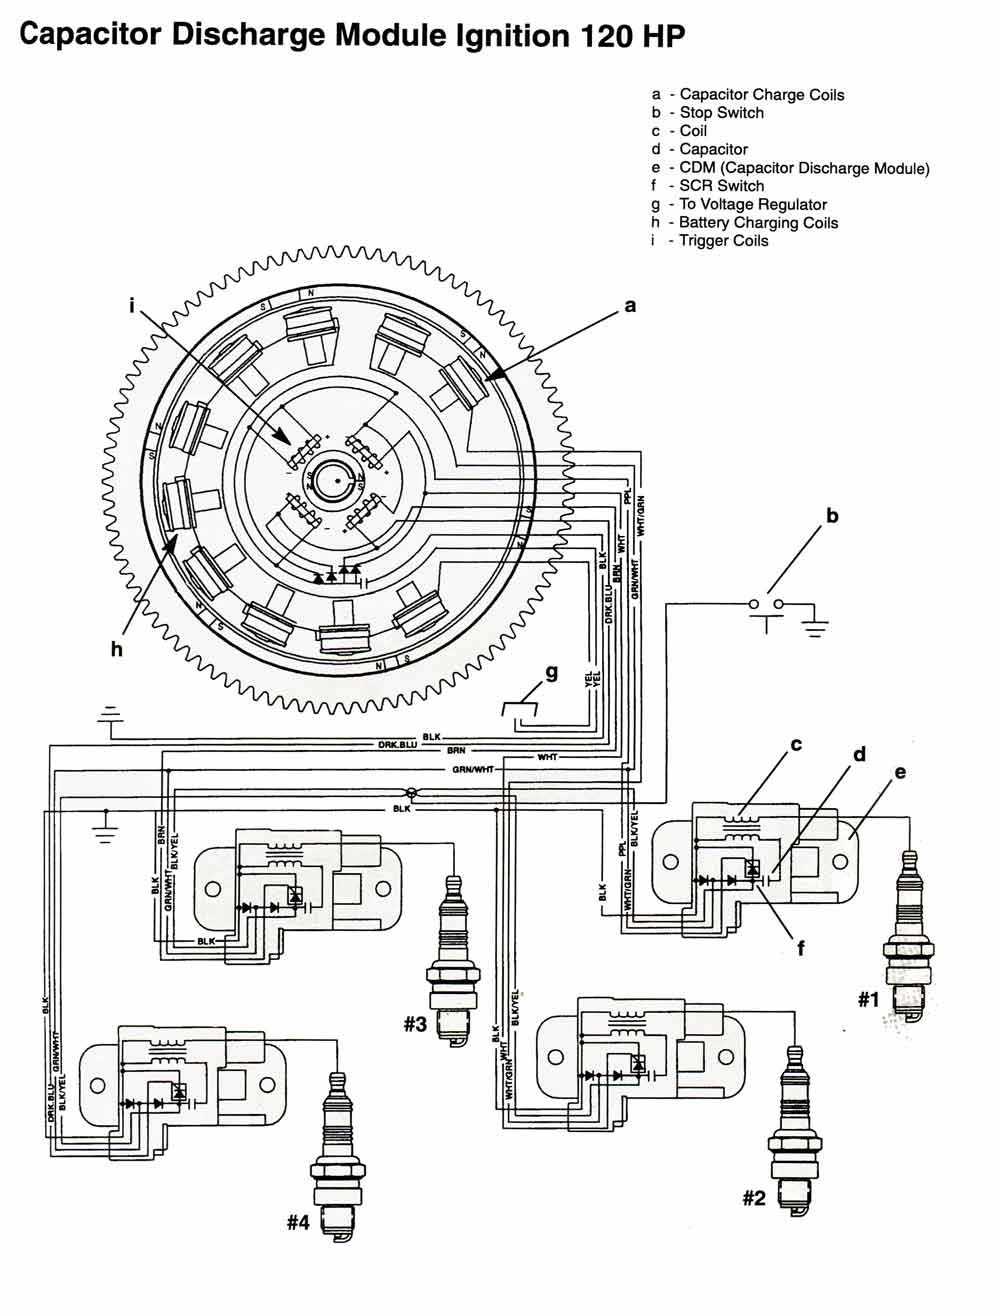 medium resolution of wrg 1907 g ignition system wiring diagramforce 120 hp 1996 up models ignition system chrysler